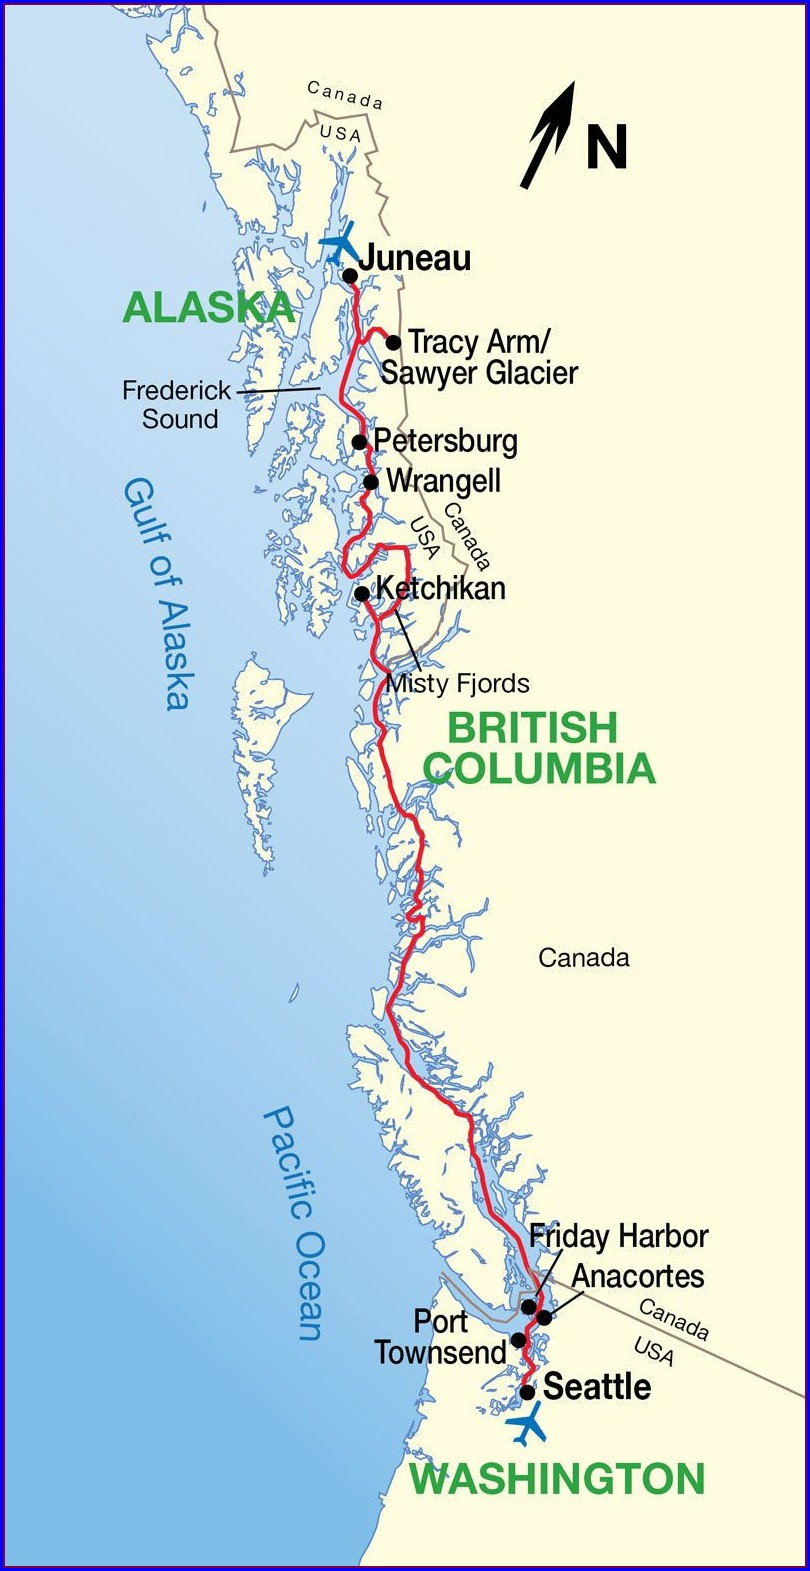 Princess Cruise Alaska Route Map